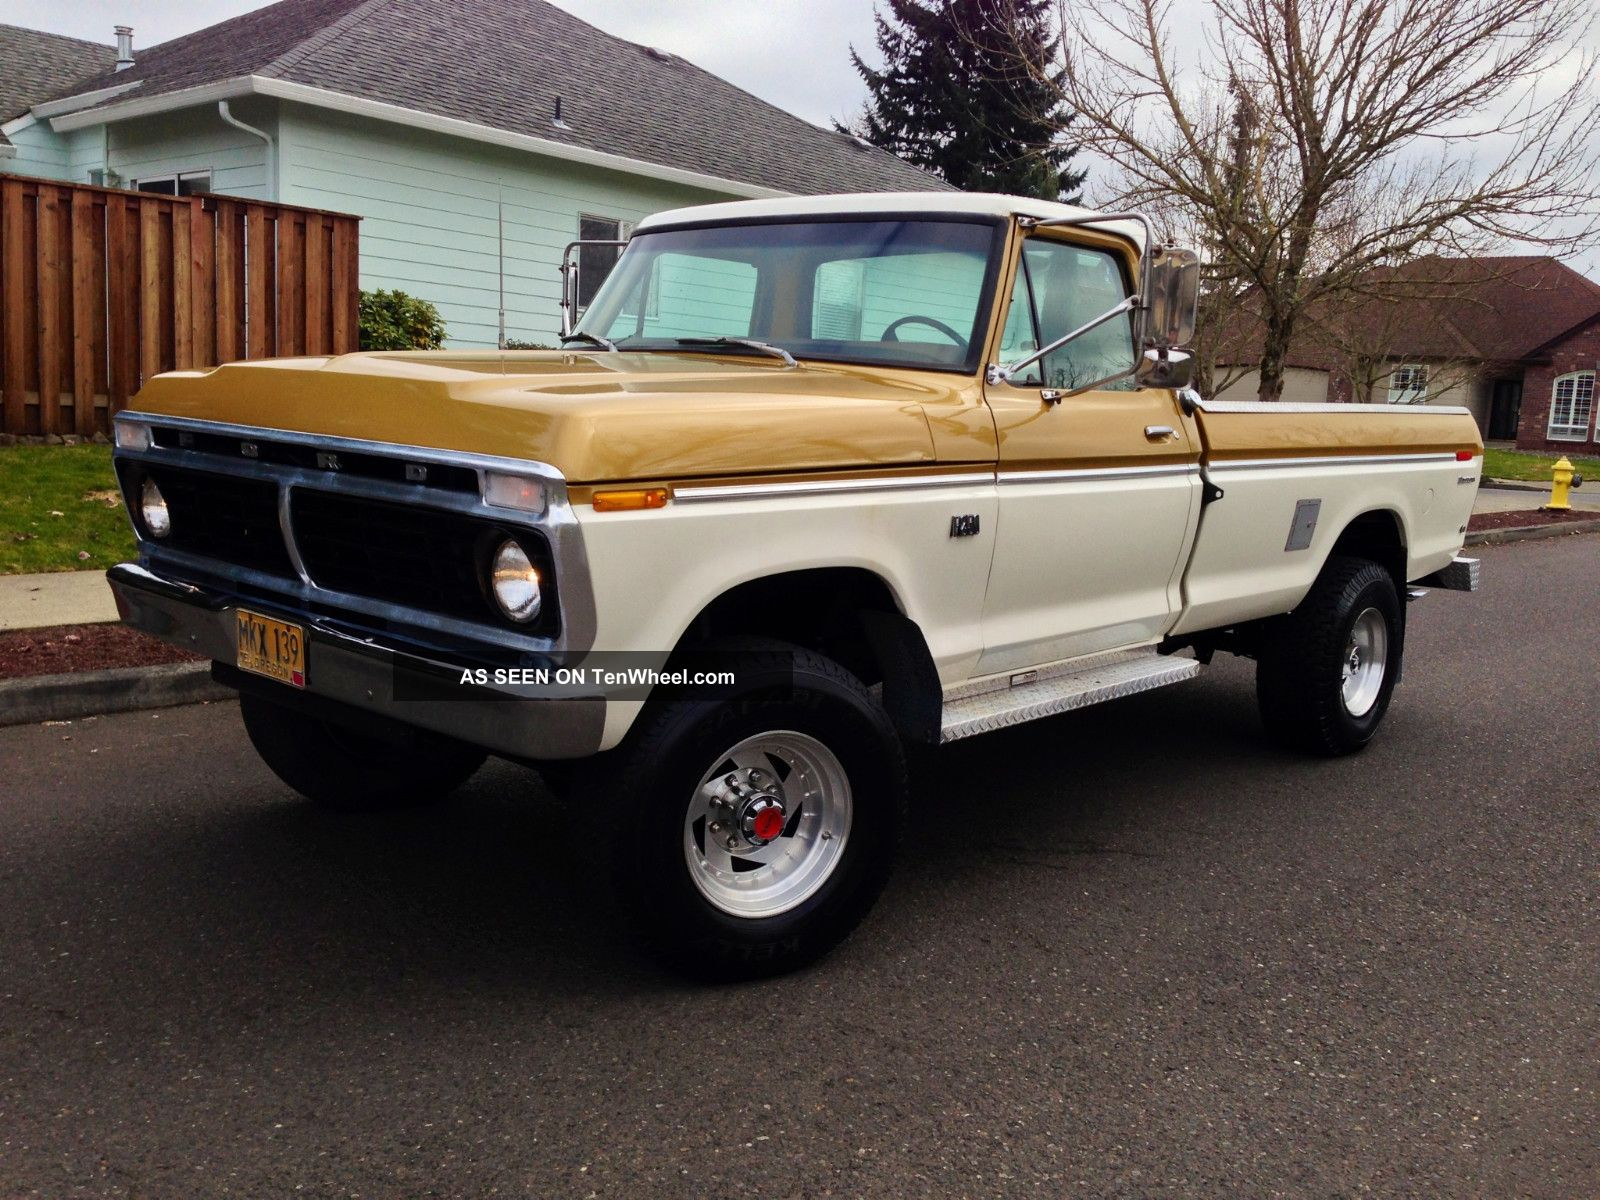 1973 Ford F250 4x4 Highboy Longbed 1974 1975 1976 1977 1978 1979 F-250 ...